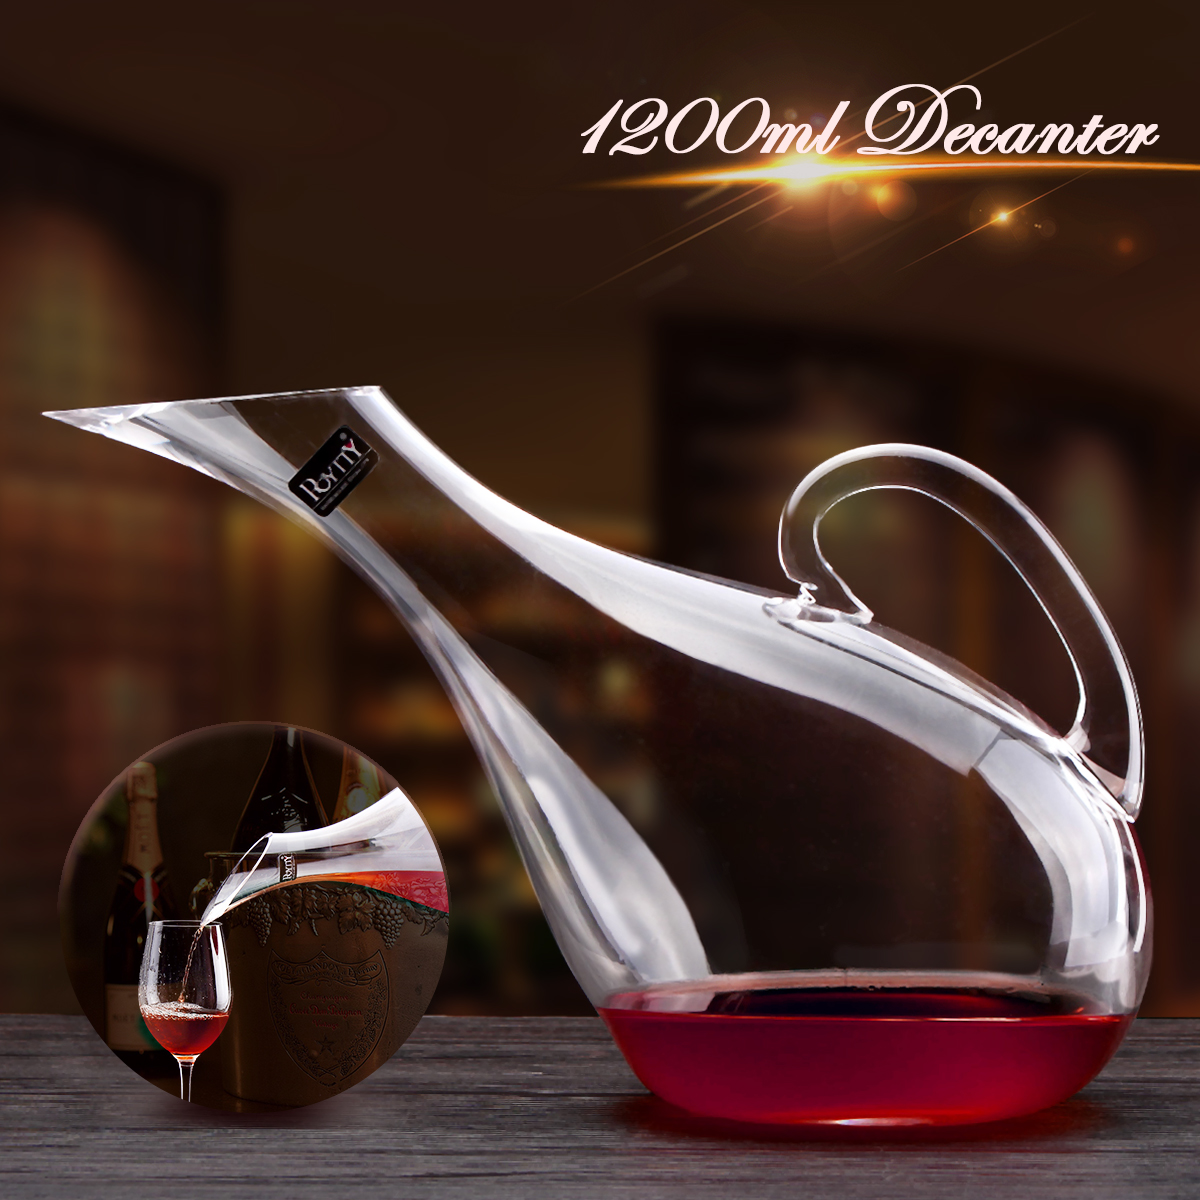 Swan Crystal Wine Glass Wine Decanter Artificial Blowing Manual Cold Cut Lead-free Crystal Wine Bottle Pourer 1200ml Swan Style Harp Shape Transparent Wine Decanter